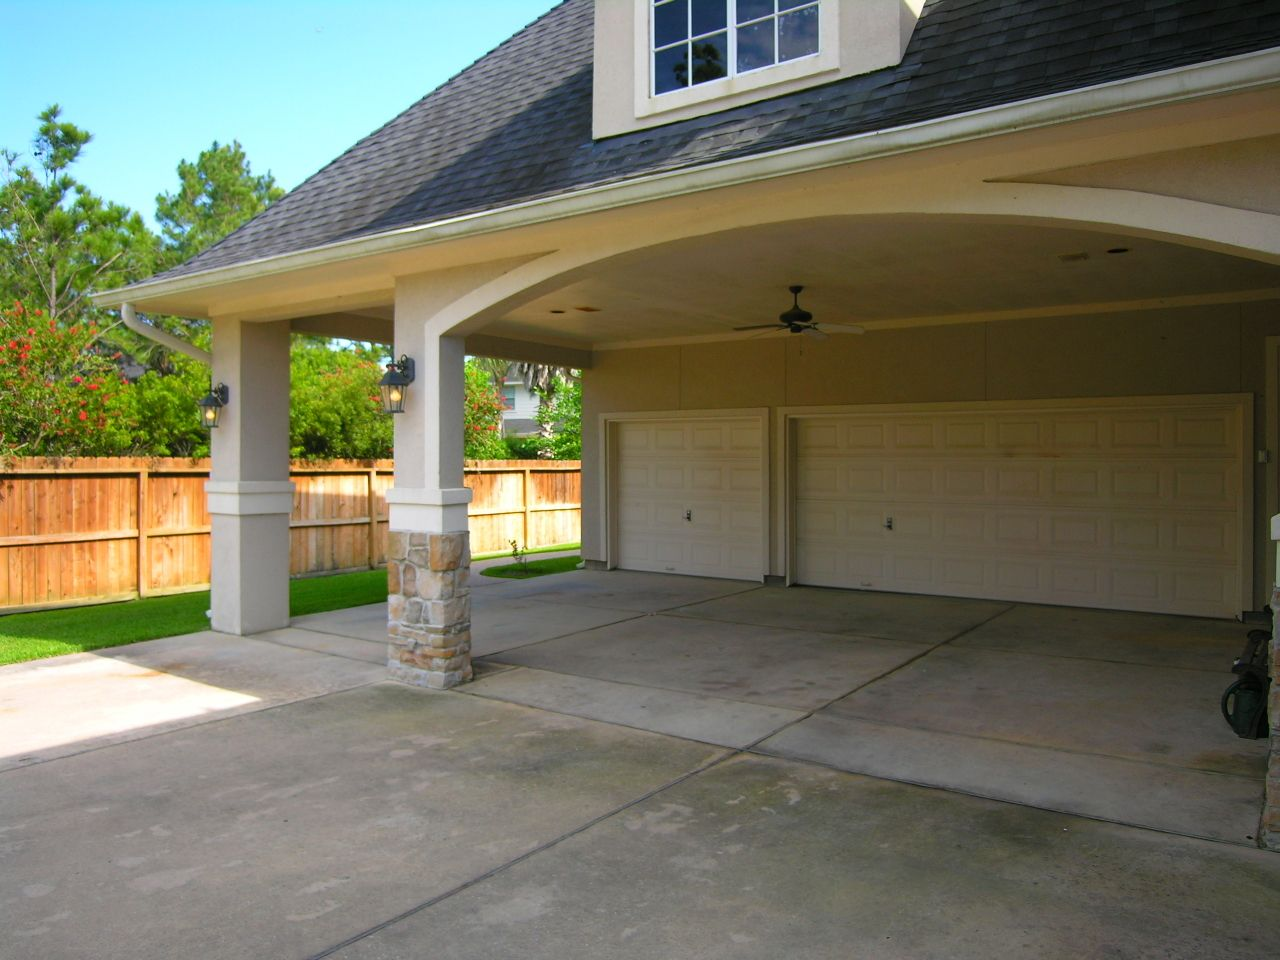 I Love This Overhang In Front Of The Garage Doors It Will Keep The Weather Off Including The Hot Sun Garage Exterior Storybook House Plan Carport Designs